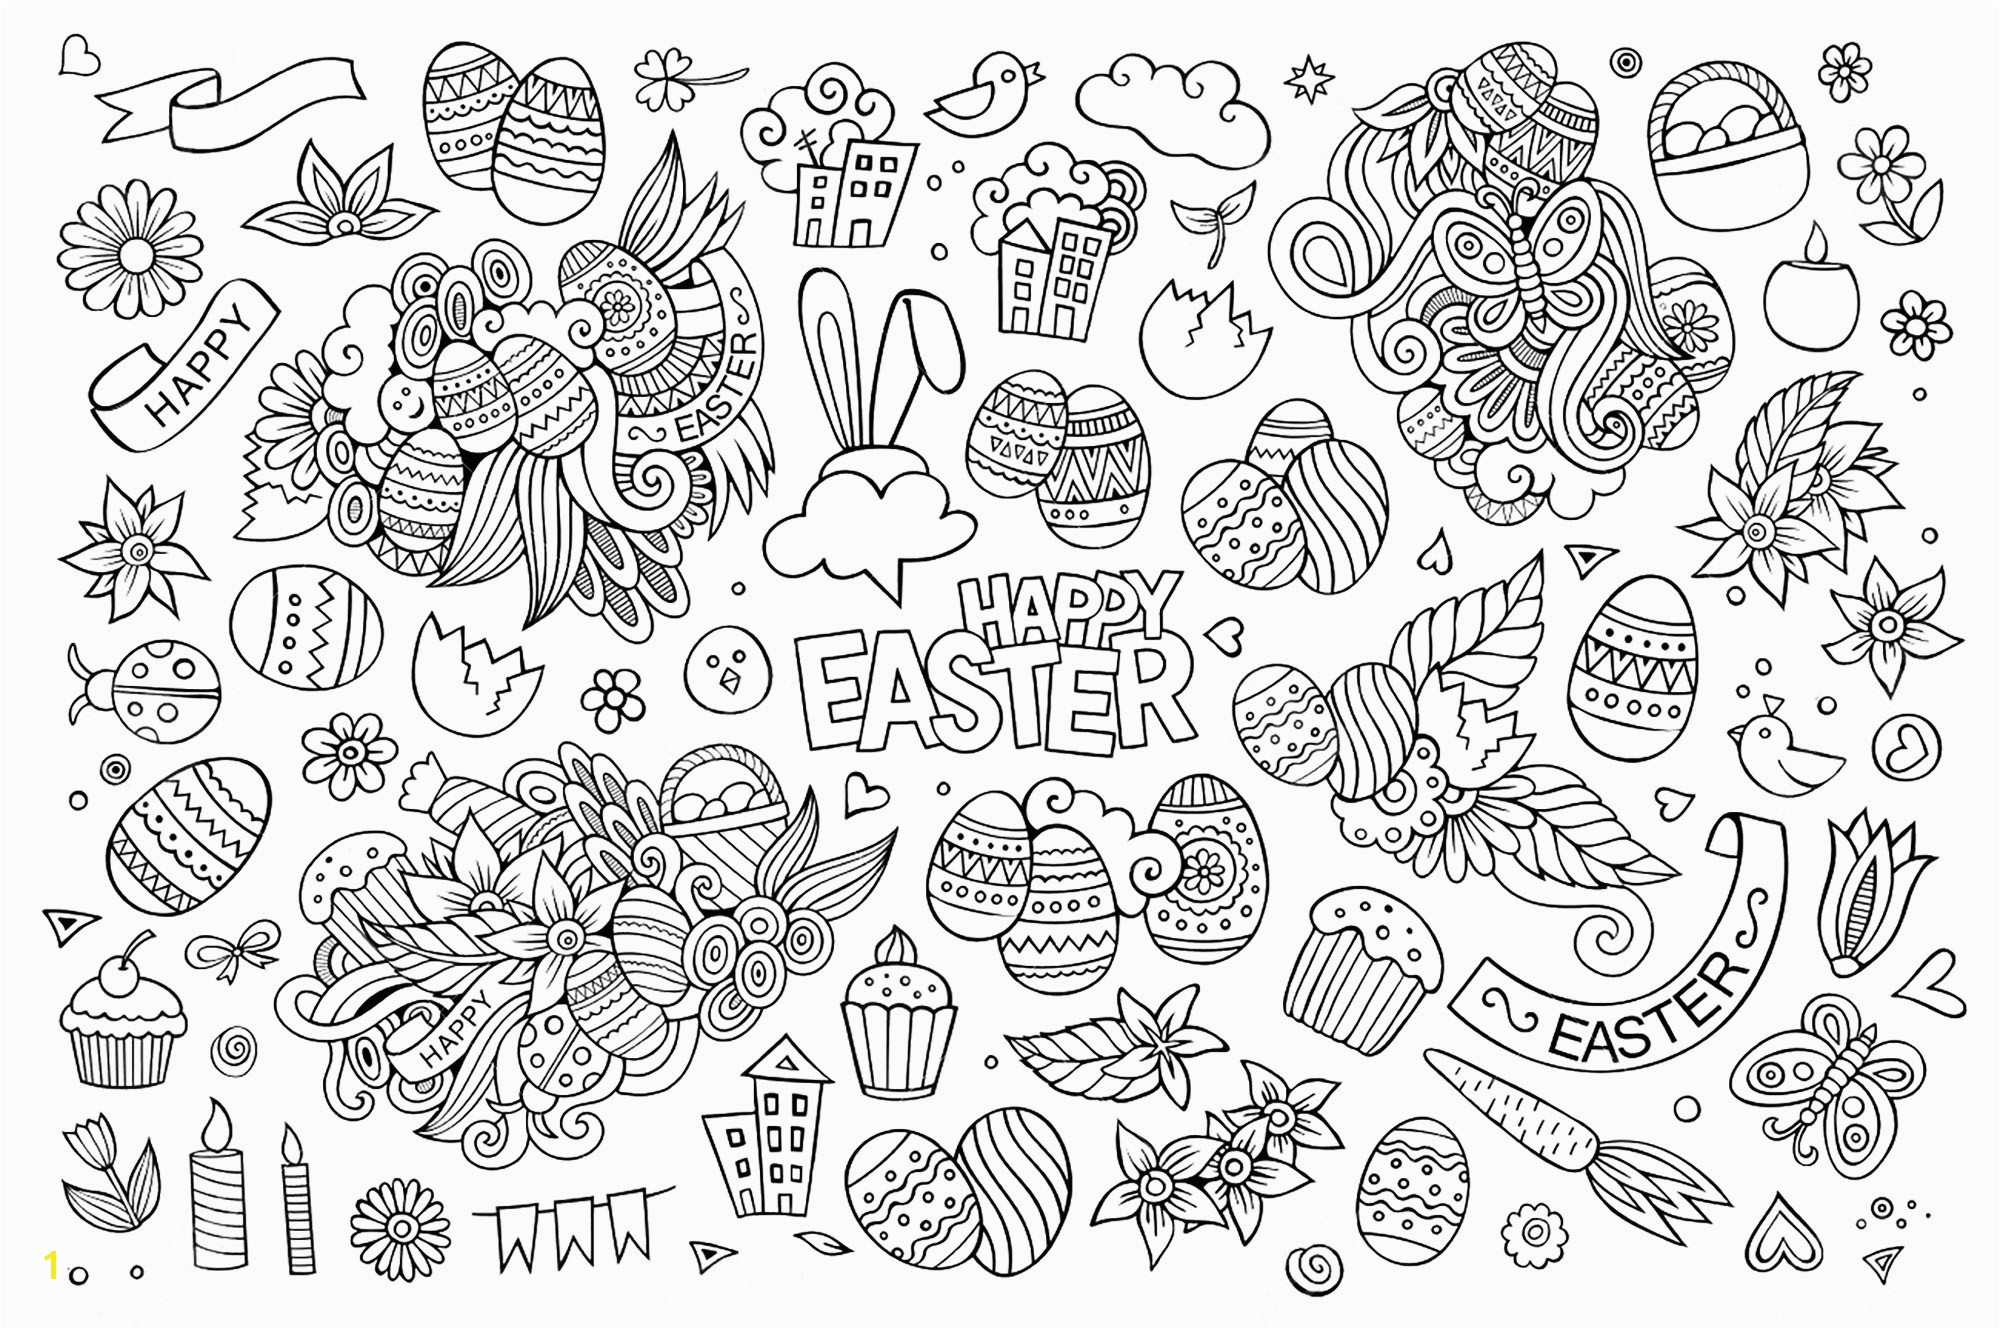 Color Pages for Adults Easter Luxury Easter Coloring Pages for Adults Flower Coloring Pages